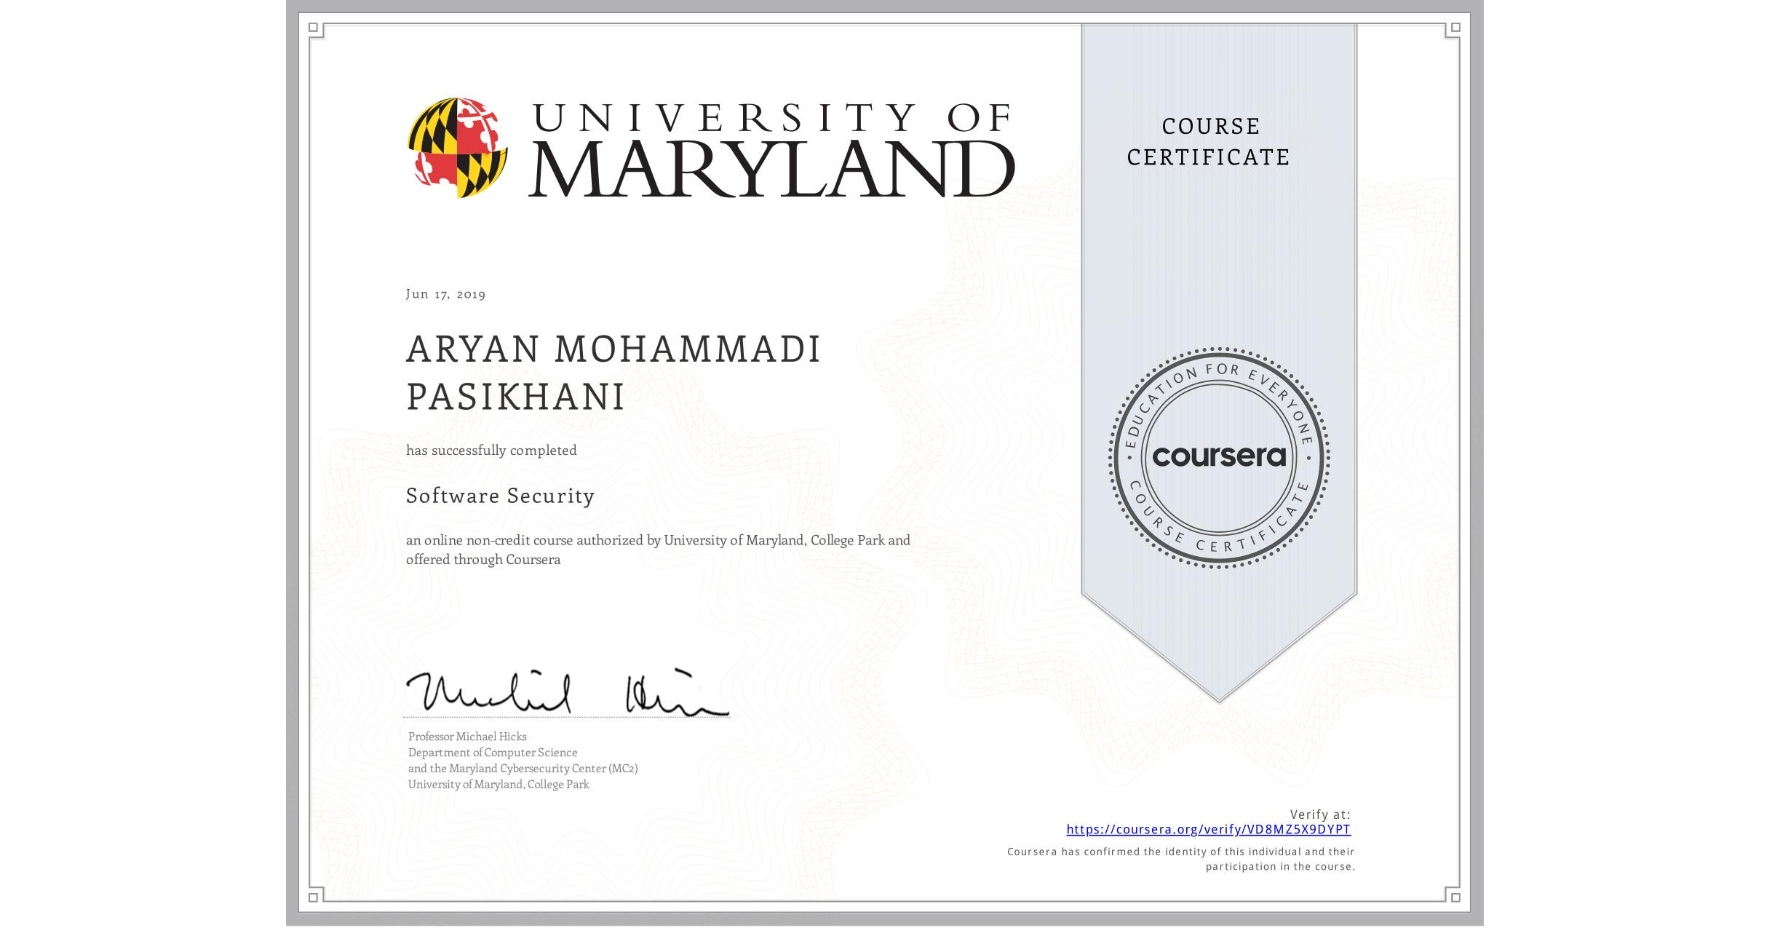 View certificate for ARYAN MOHAMMADI PASIKHANI, Software Security , an online non-credit course authorized by University of Maryland, College Park and offered through Coursera